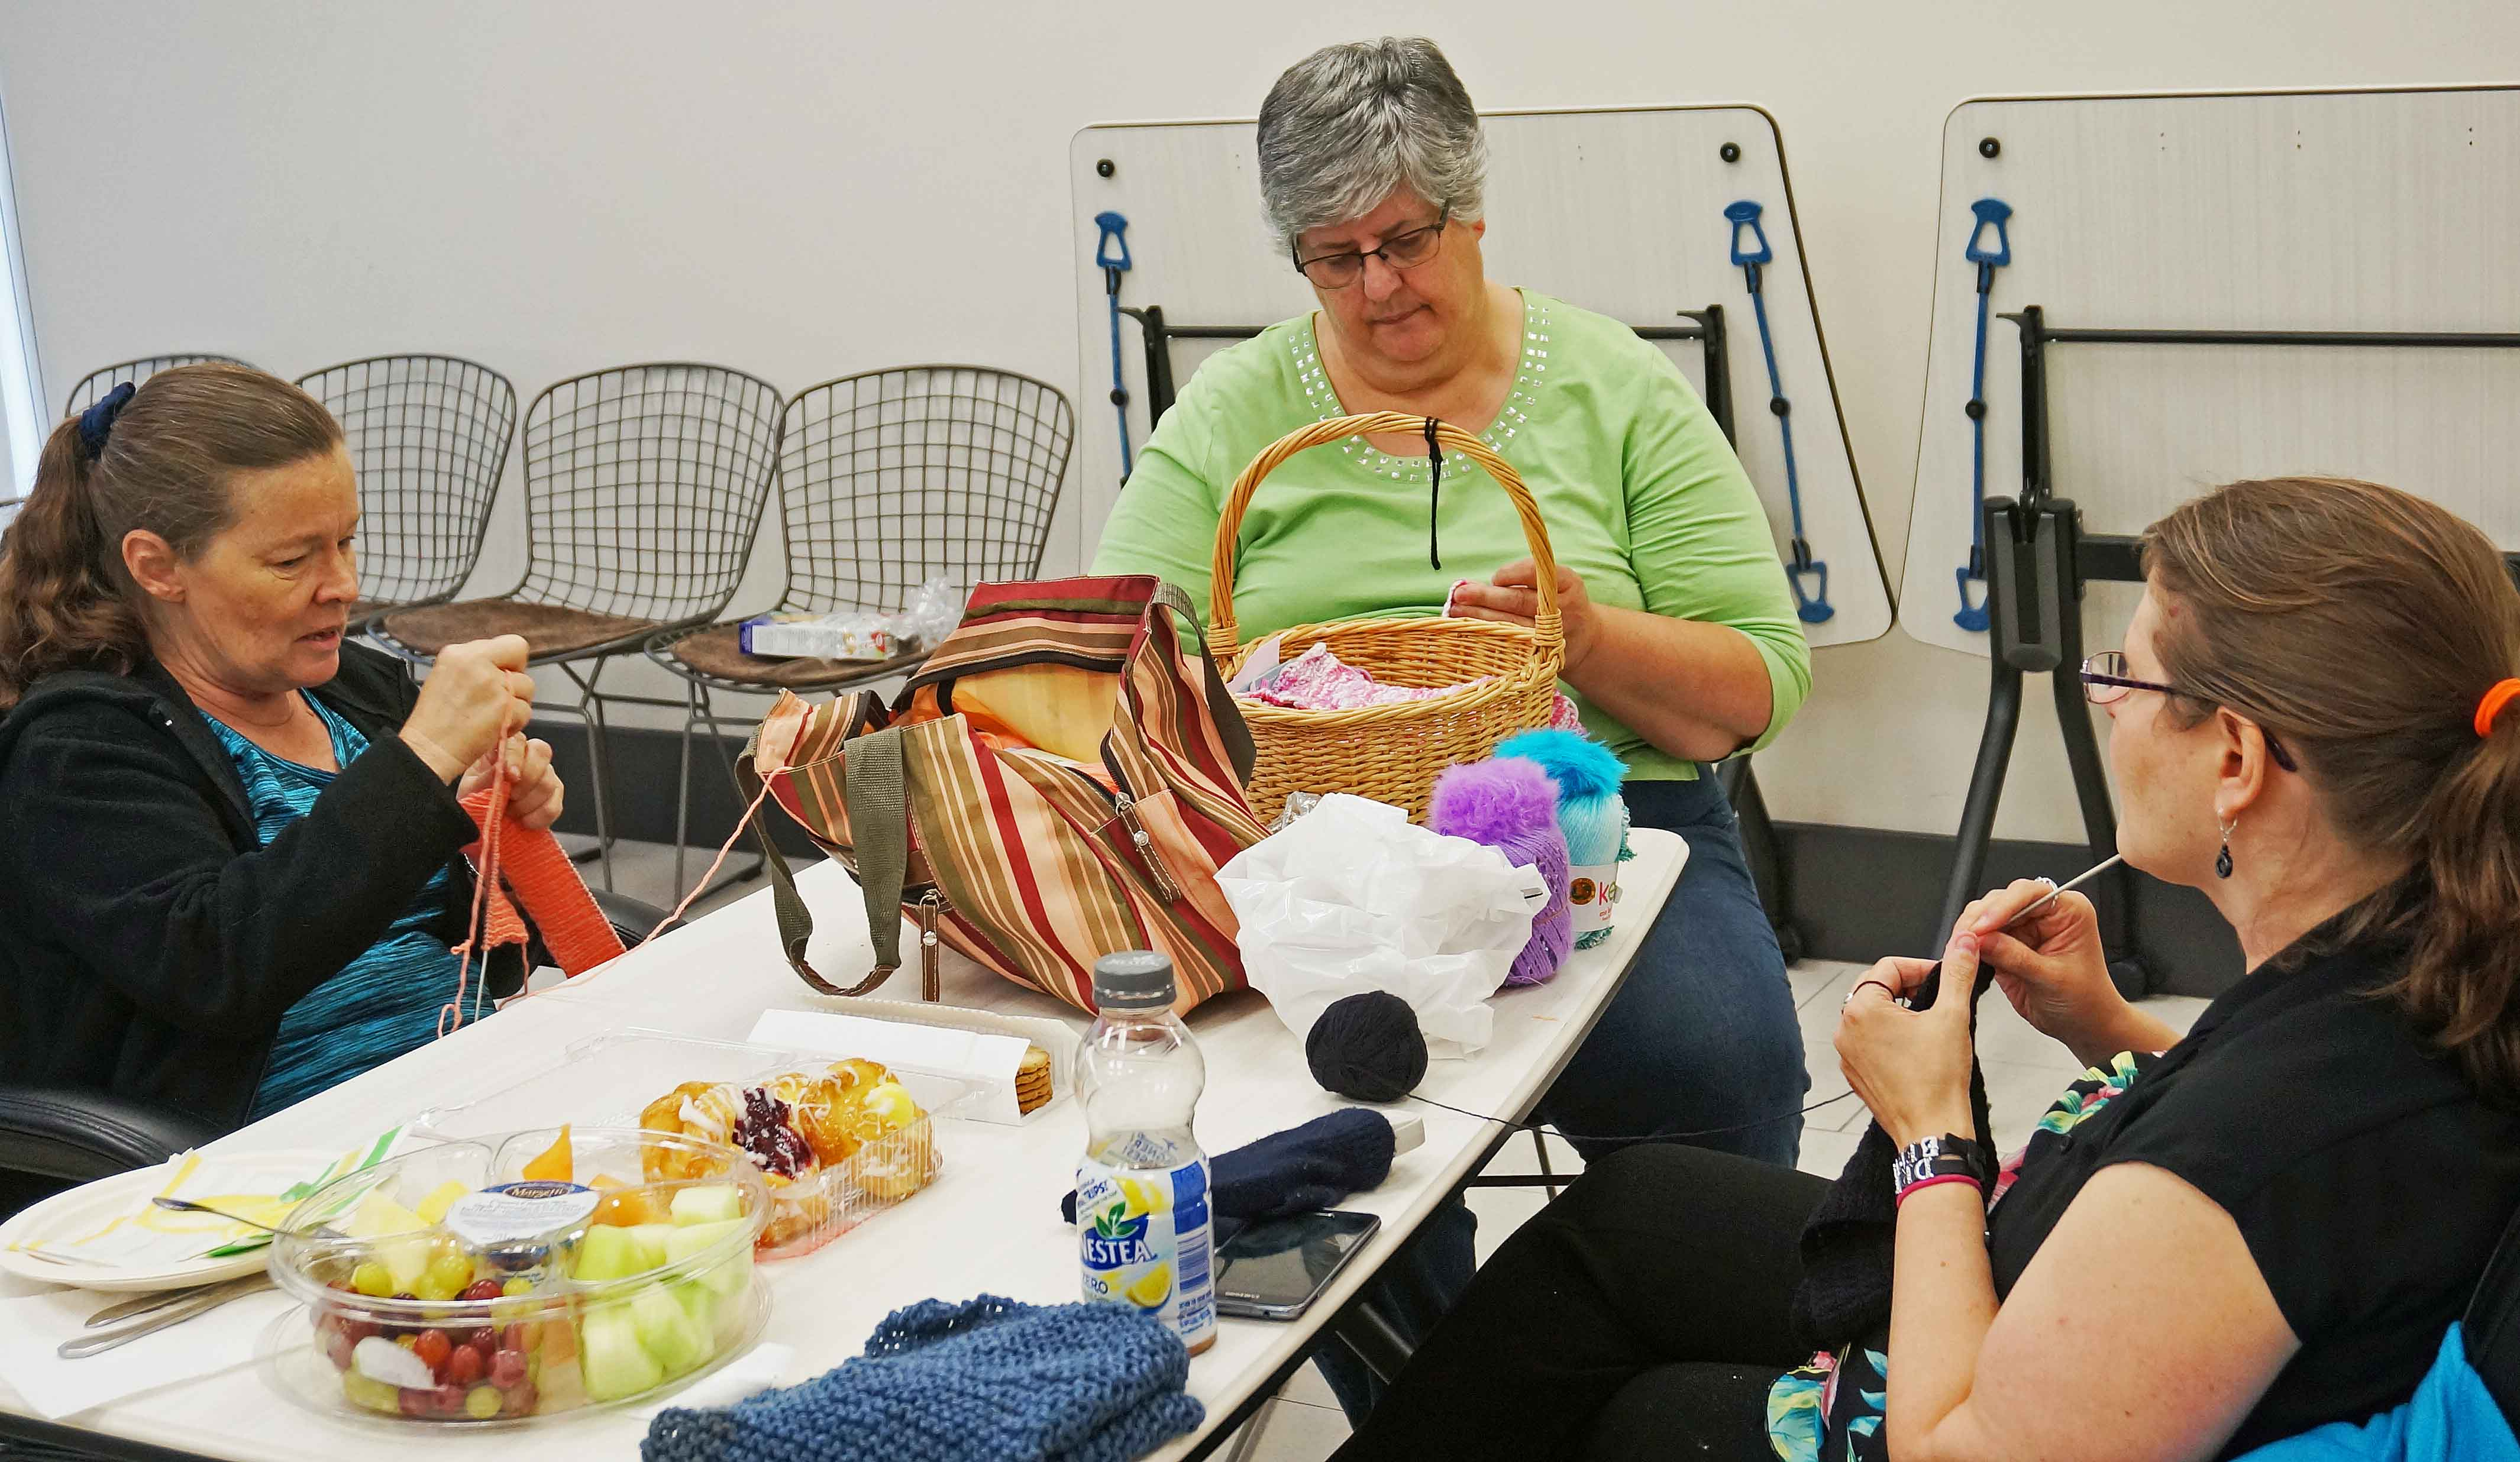 three women sitting at tables together, knitting and talking